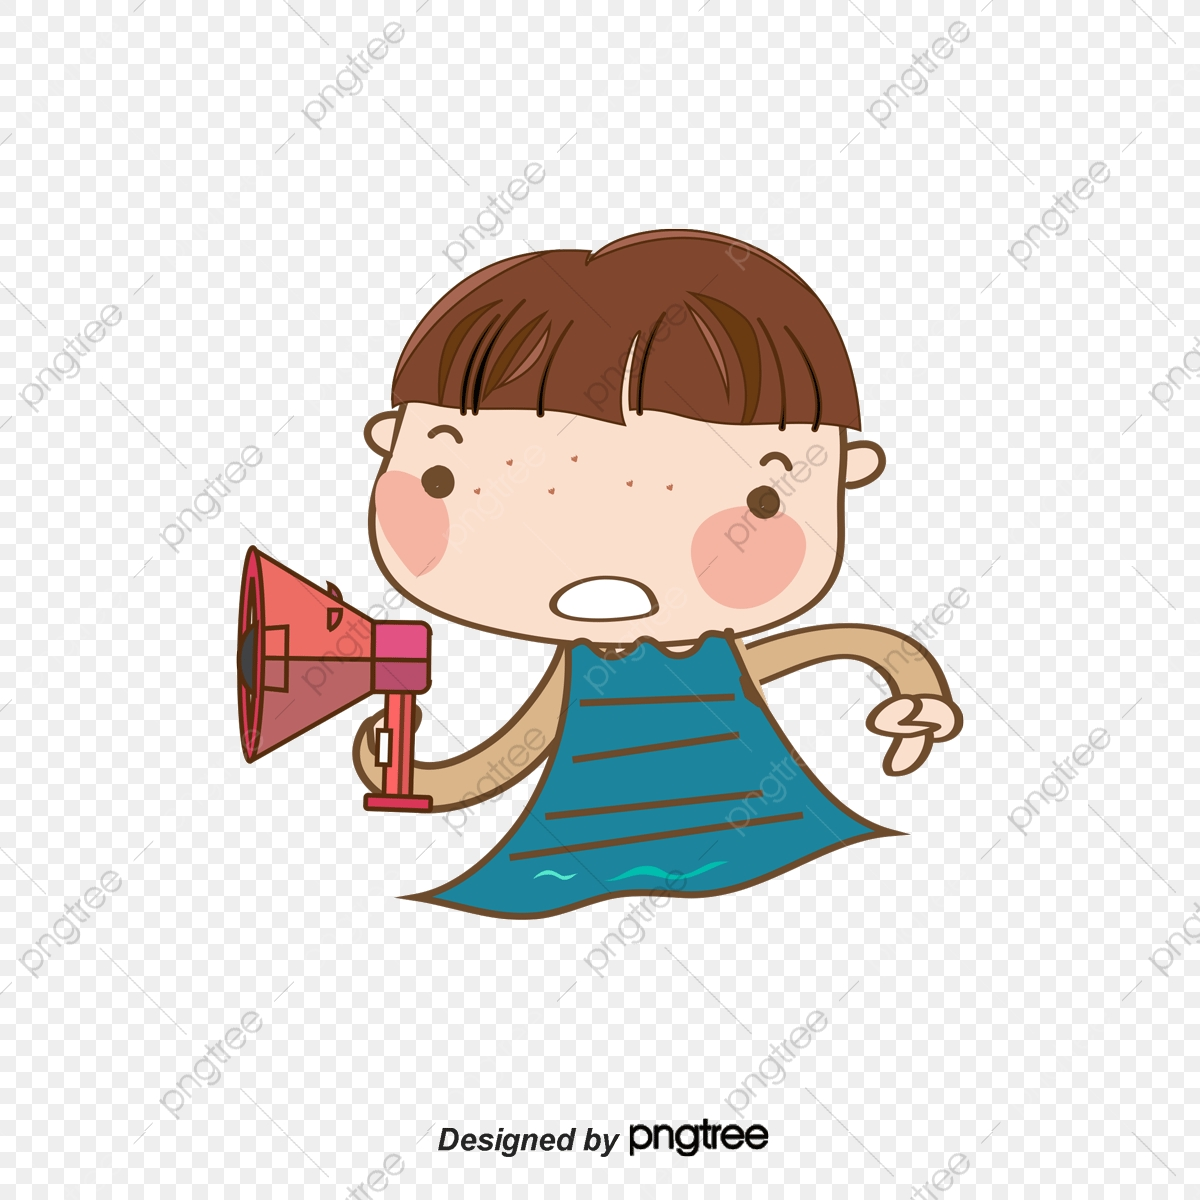 The Person Who Speaks Selling Speak Cartoon Girl Png Transparent Clipart Image And Psd File For Free Download